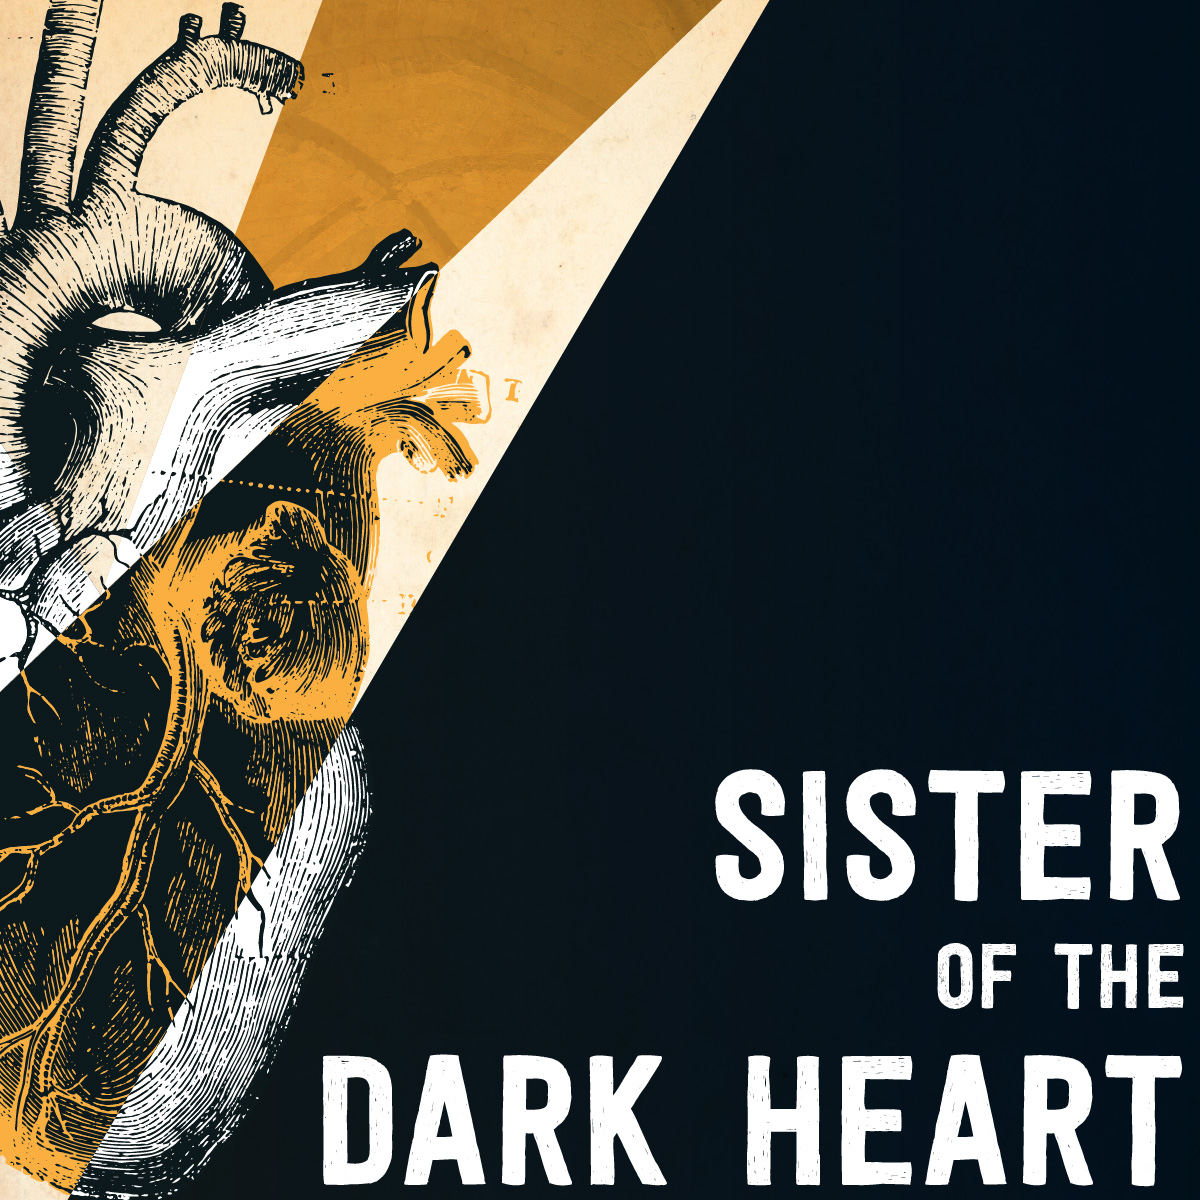 sister_of_the_dark_heart_social_heart_half.jpg